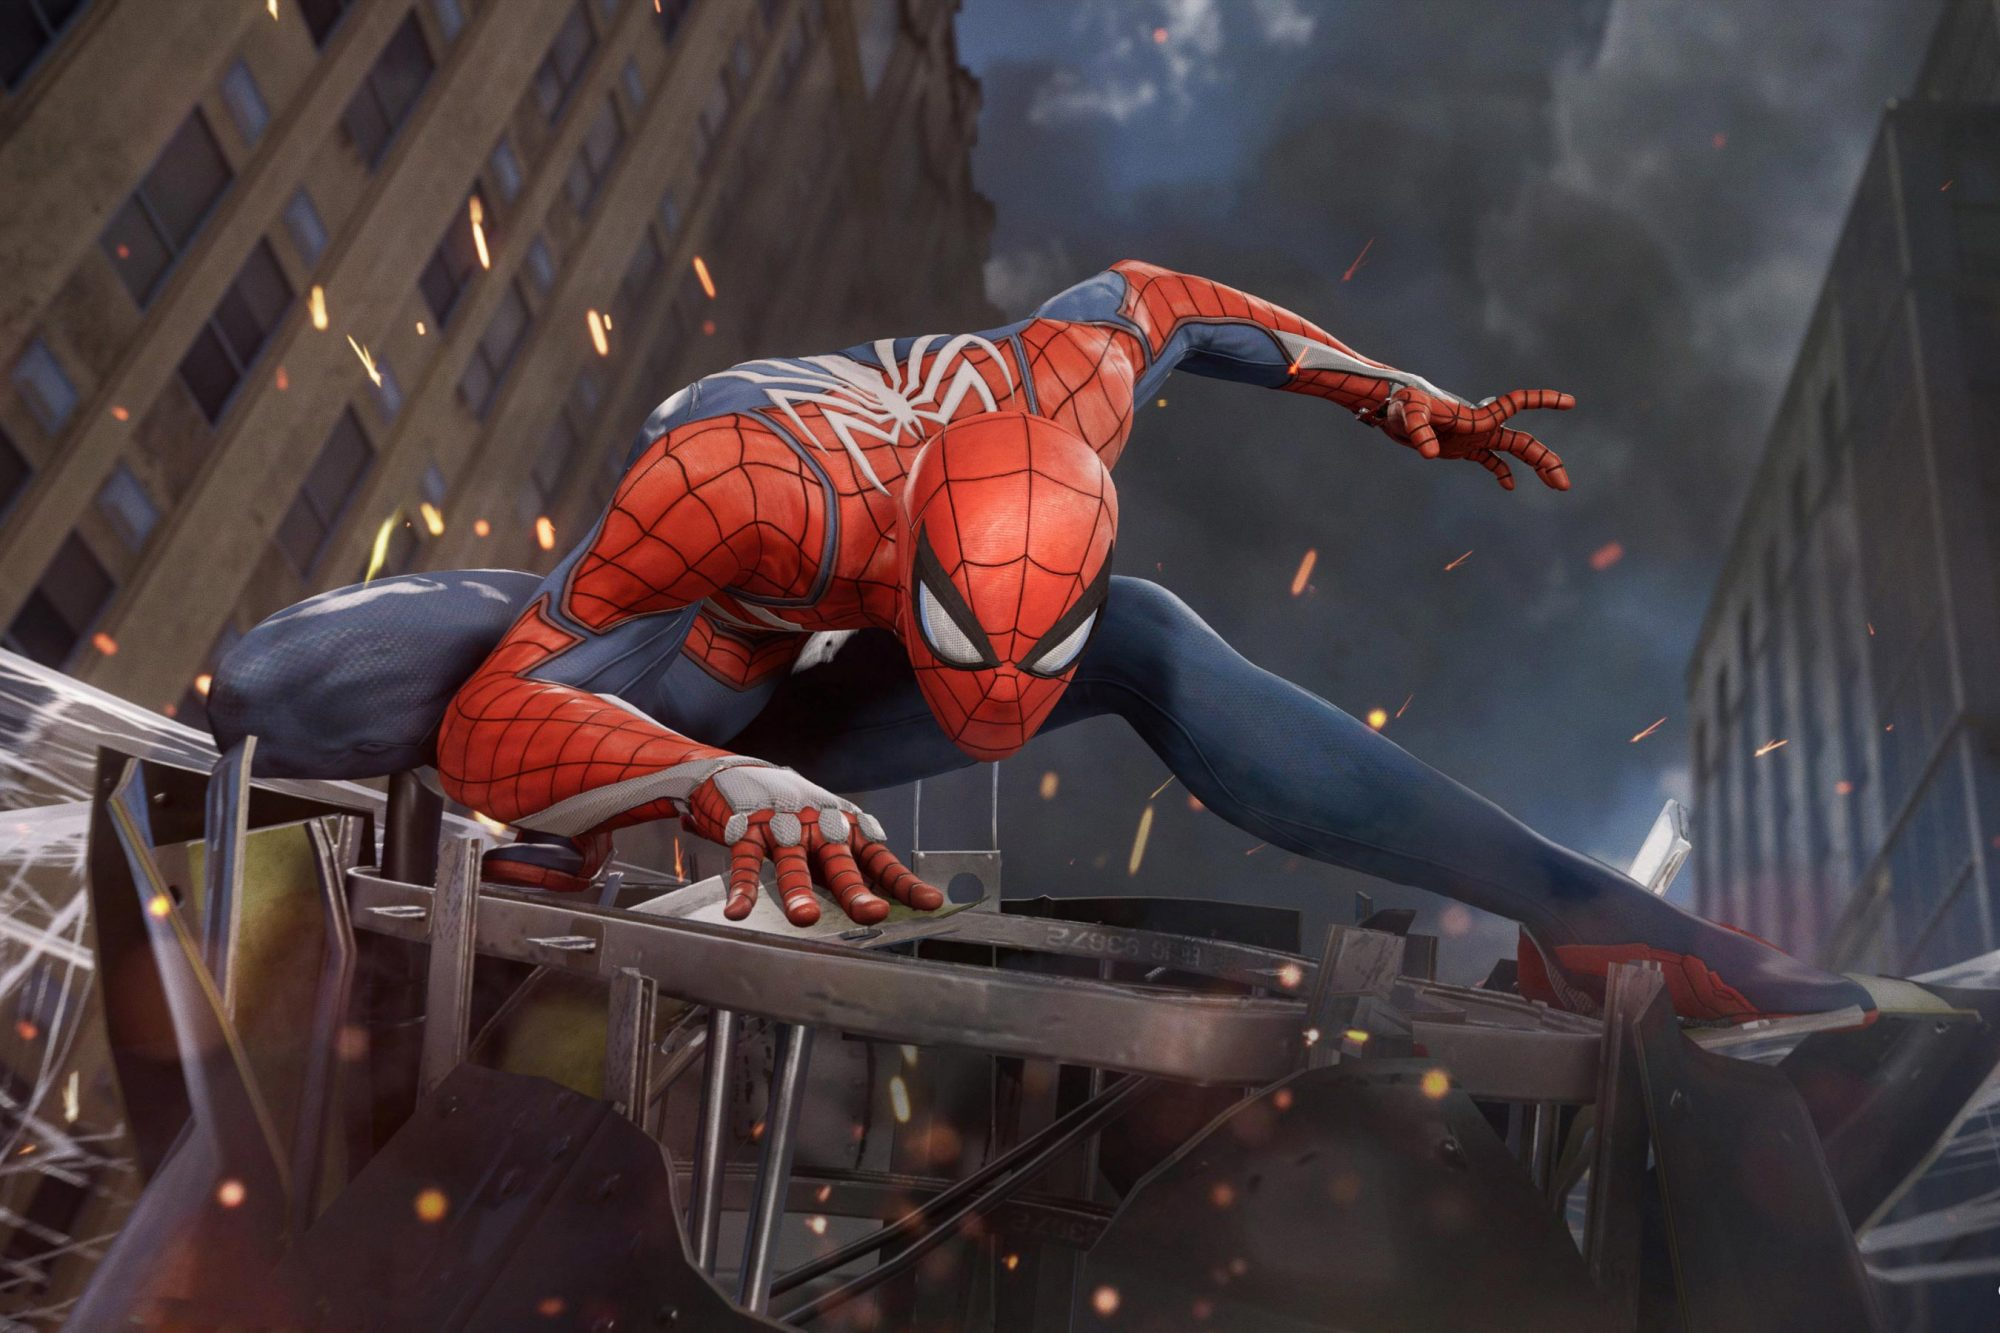 Spider-Man video game (2018) CR: Sony Interactive Entertainment